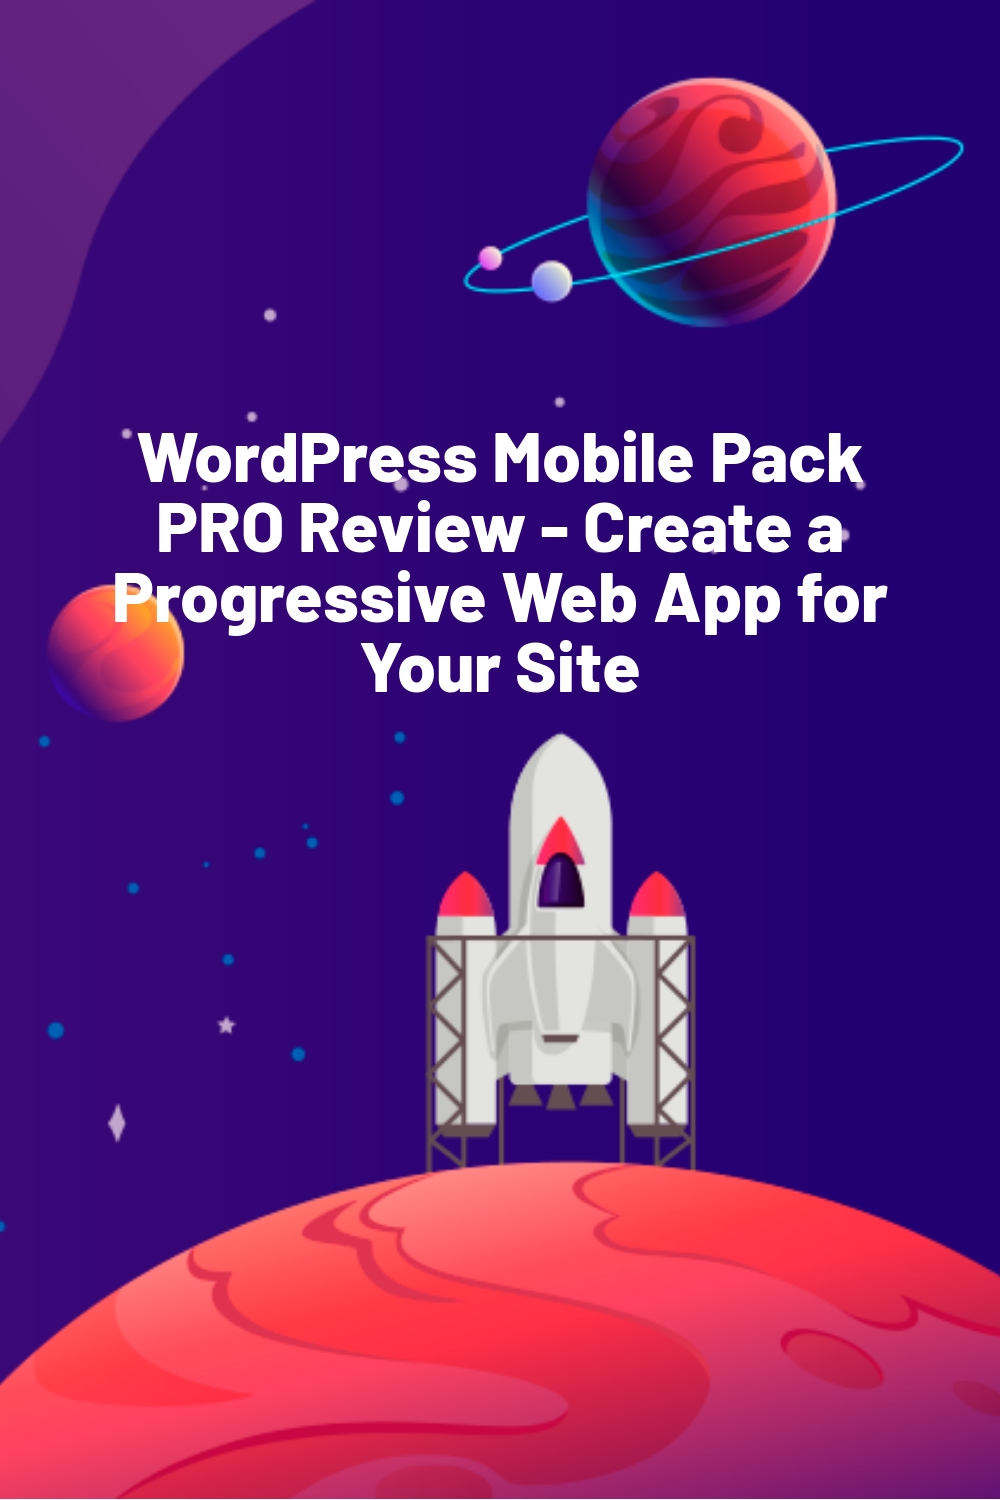 WordPress Mobile Pack PRO Review – Create a Progressive Web App for Your Site